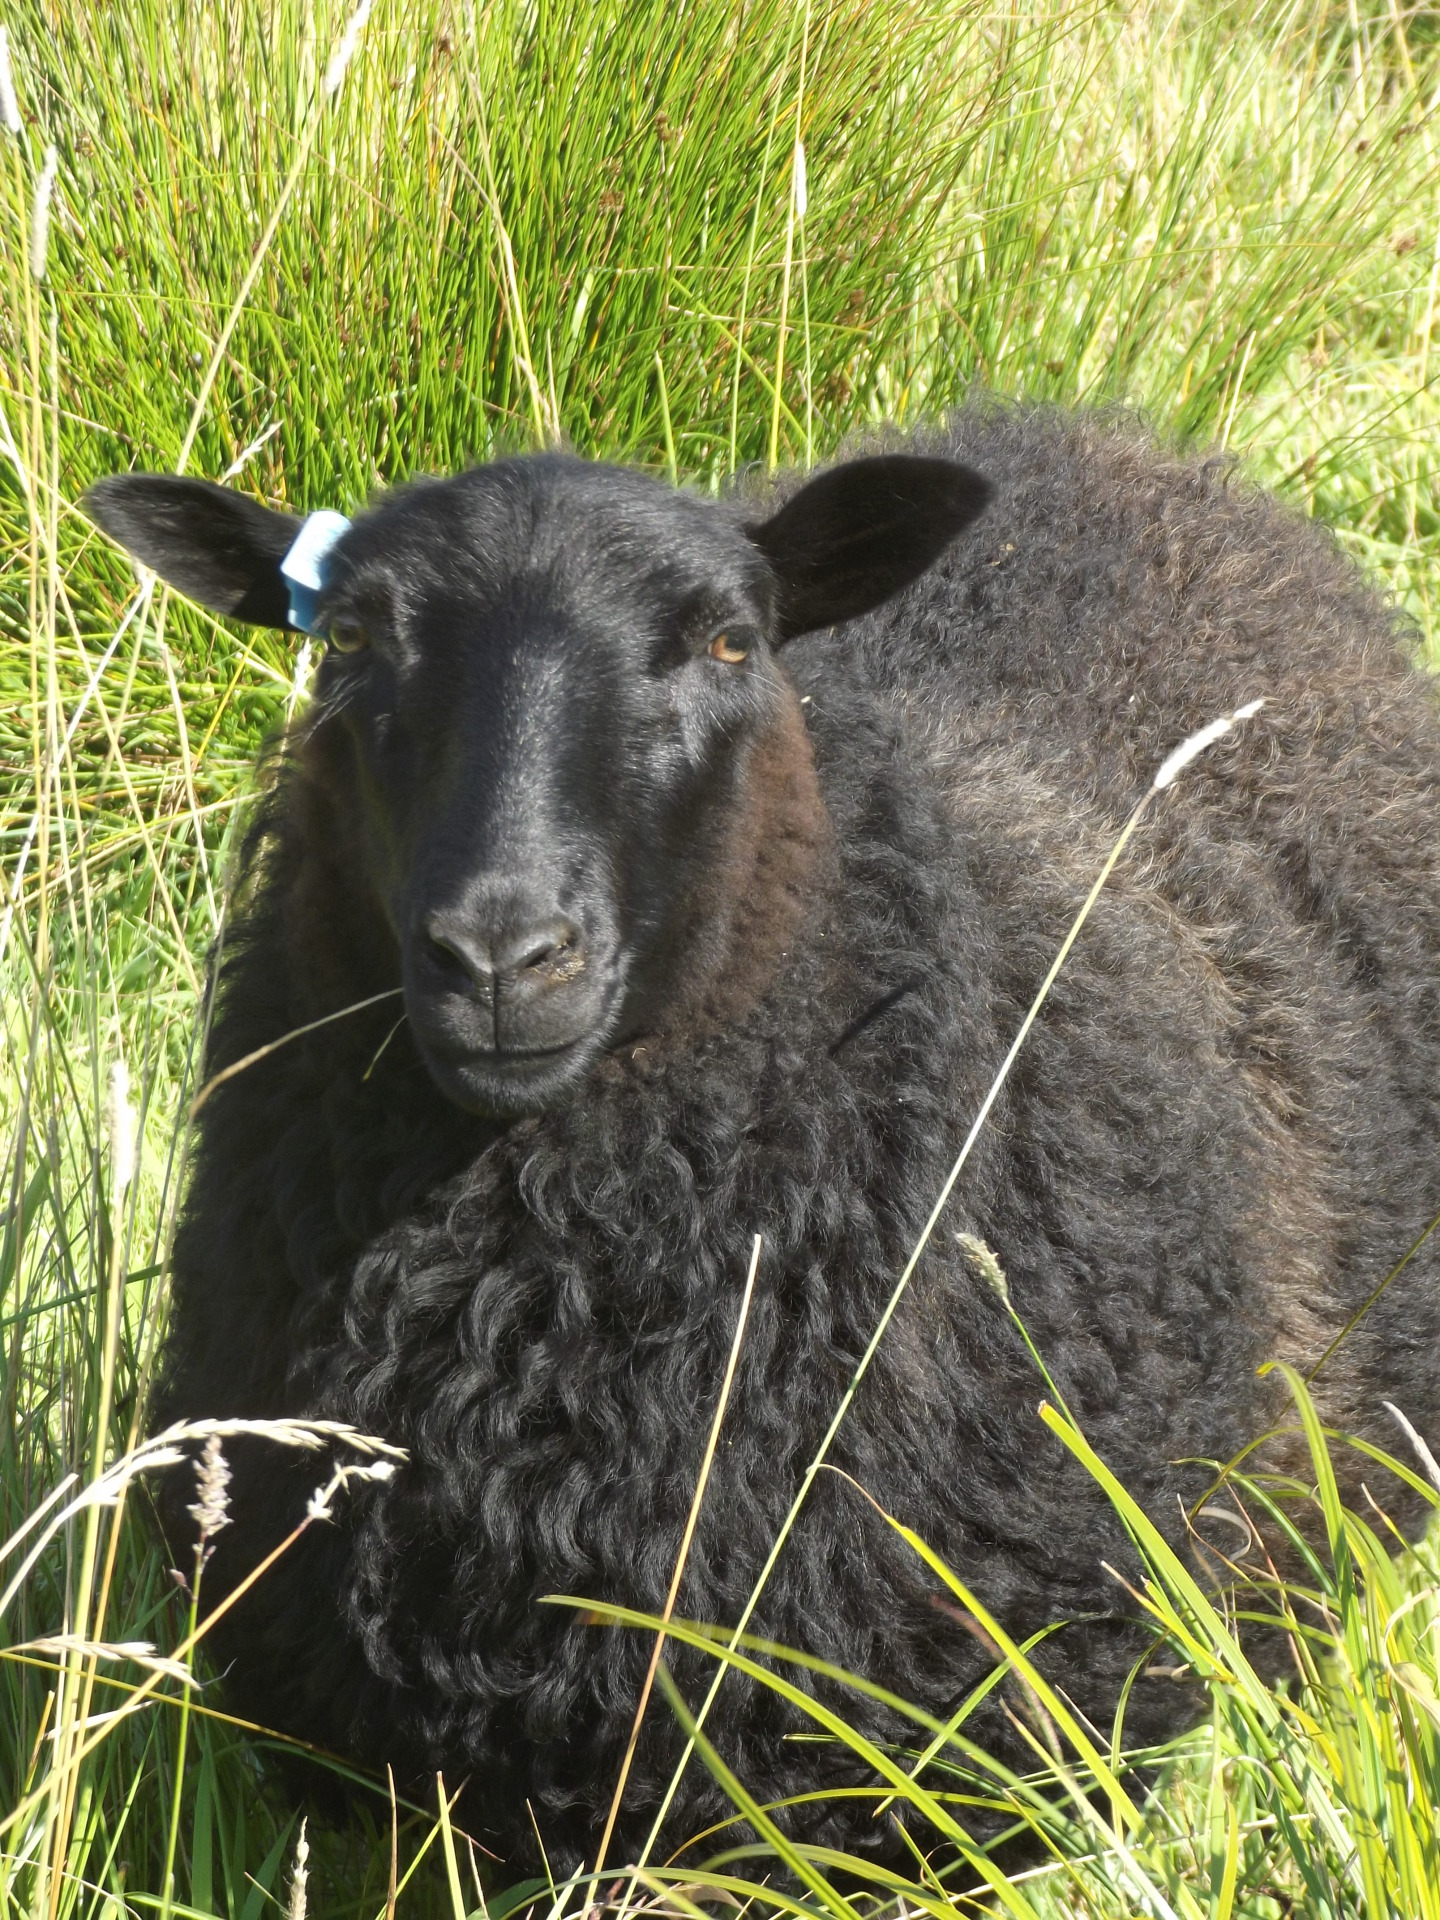 Lovely solid black polled ewe